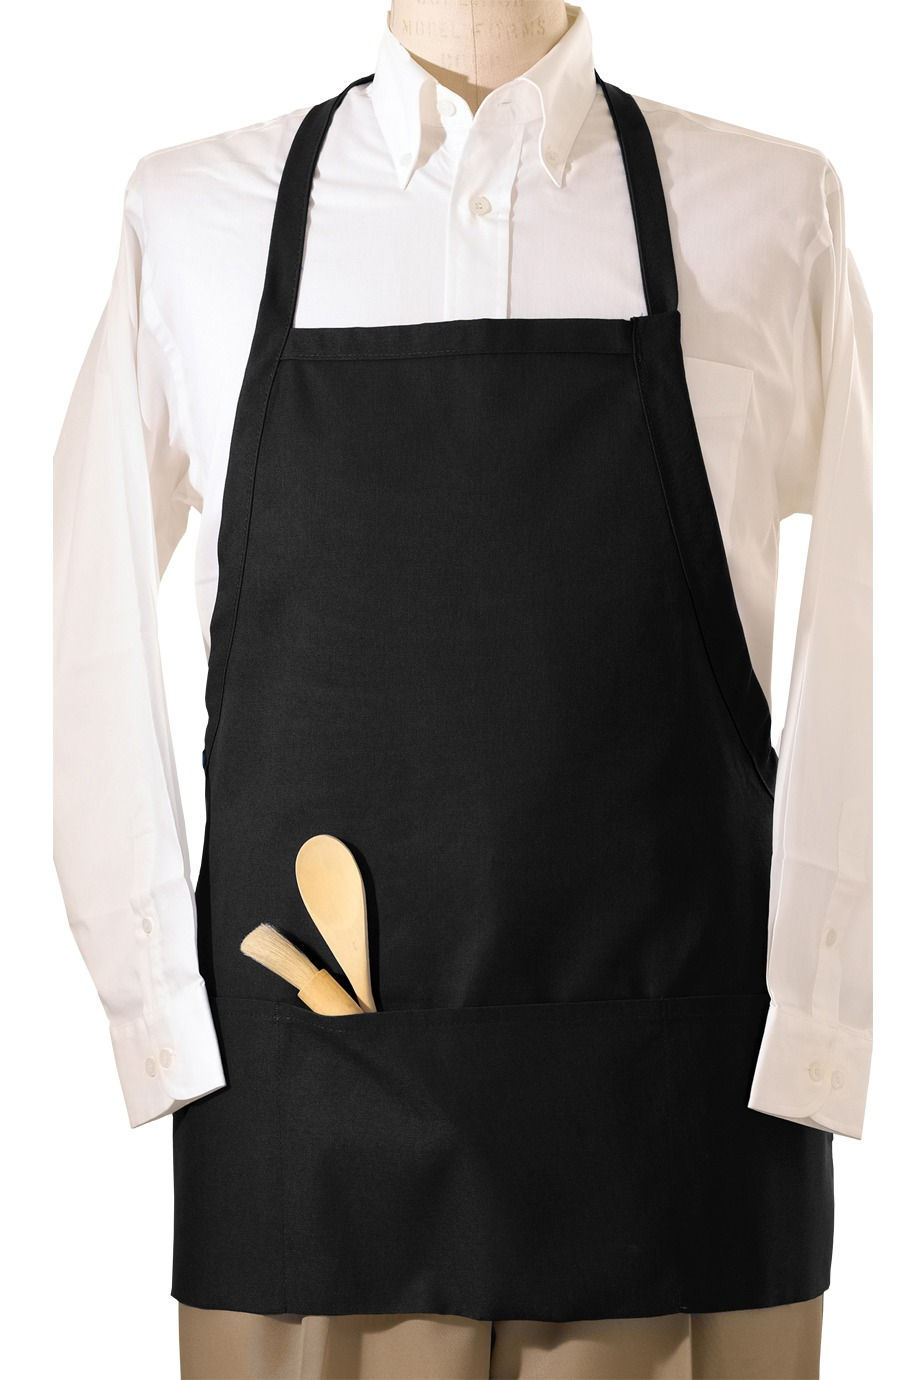 Edwards Garment 9010 - E-Z Slide Bib Apron